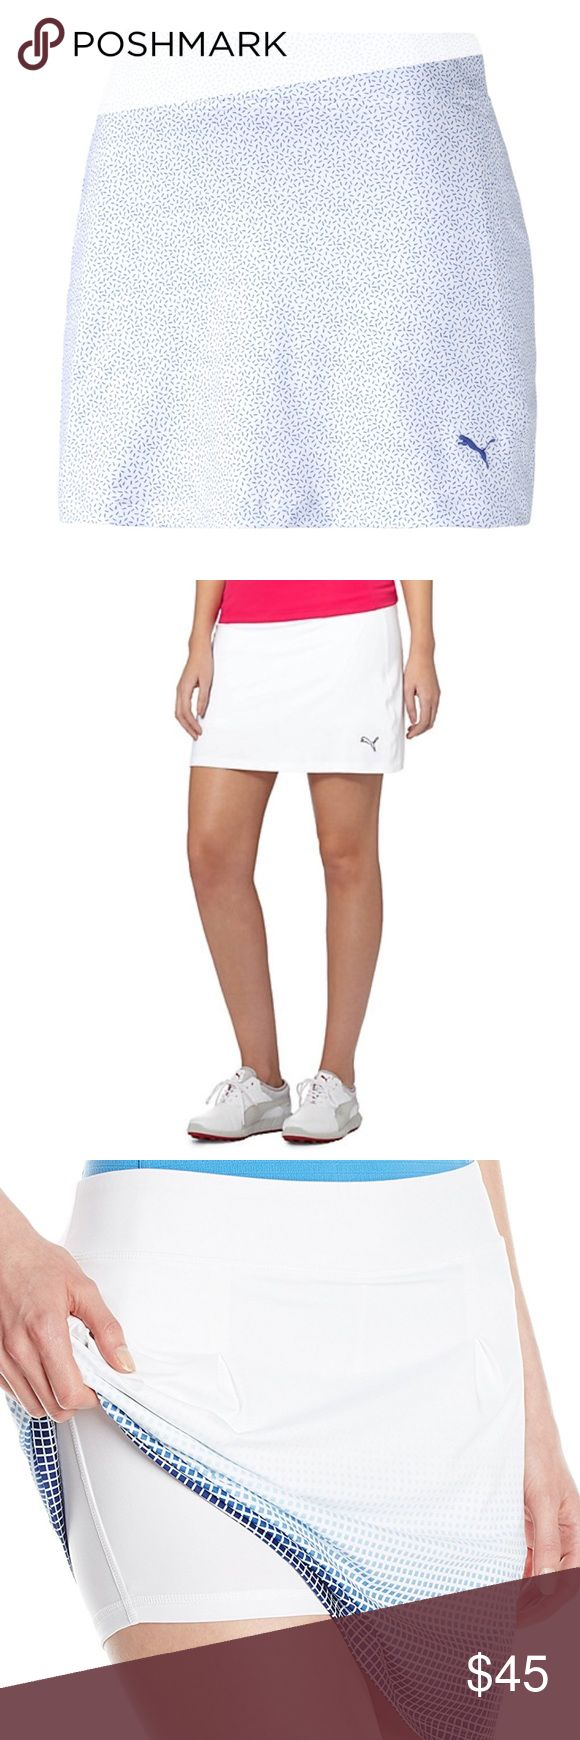 Puma glitch white and blue performance skort Brand new with tags. Size medium. Absolutely adorable and a great casual skort that can be worn in any activity, tennis, running, cycling, you name it. In the second picture you'll see this modeled in white. I added the third picture of this skort in a different pattern so you could see what it looks like with shorts underneath. Retails for $65! Puma glitch white and blue performance skort. Puma Shorts Skorts